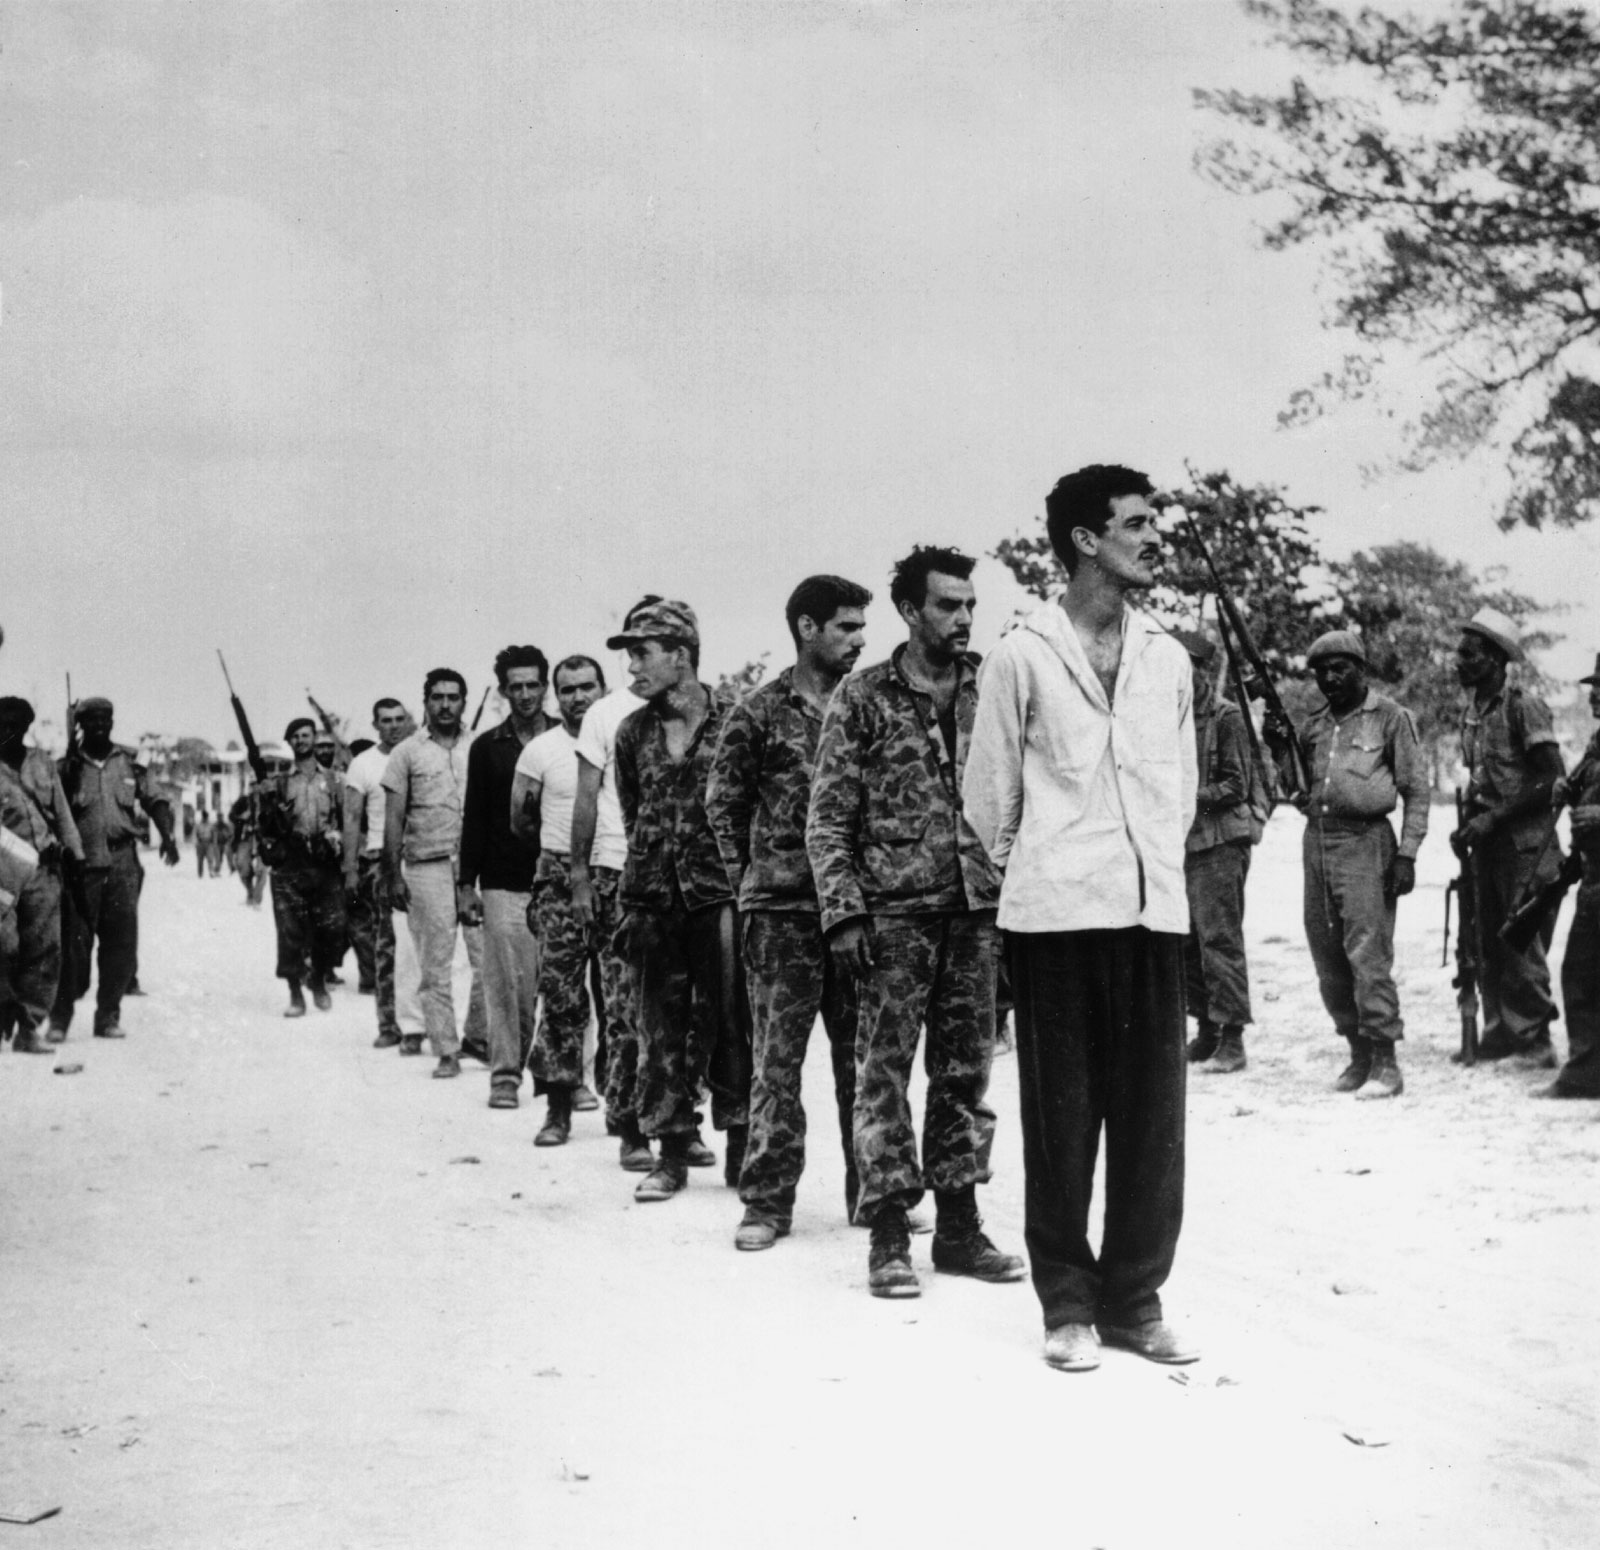 bay of pigs invasion essay Category: essays research papers title: bay of pigs invasion.